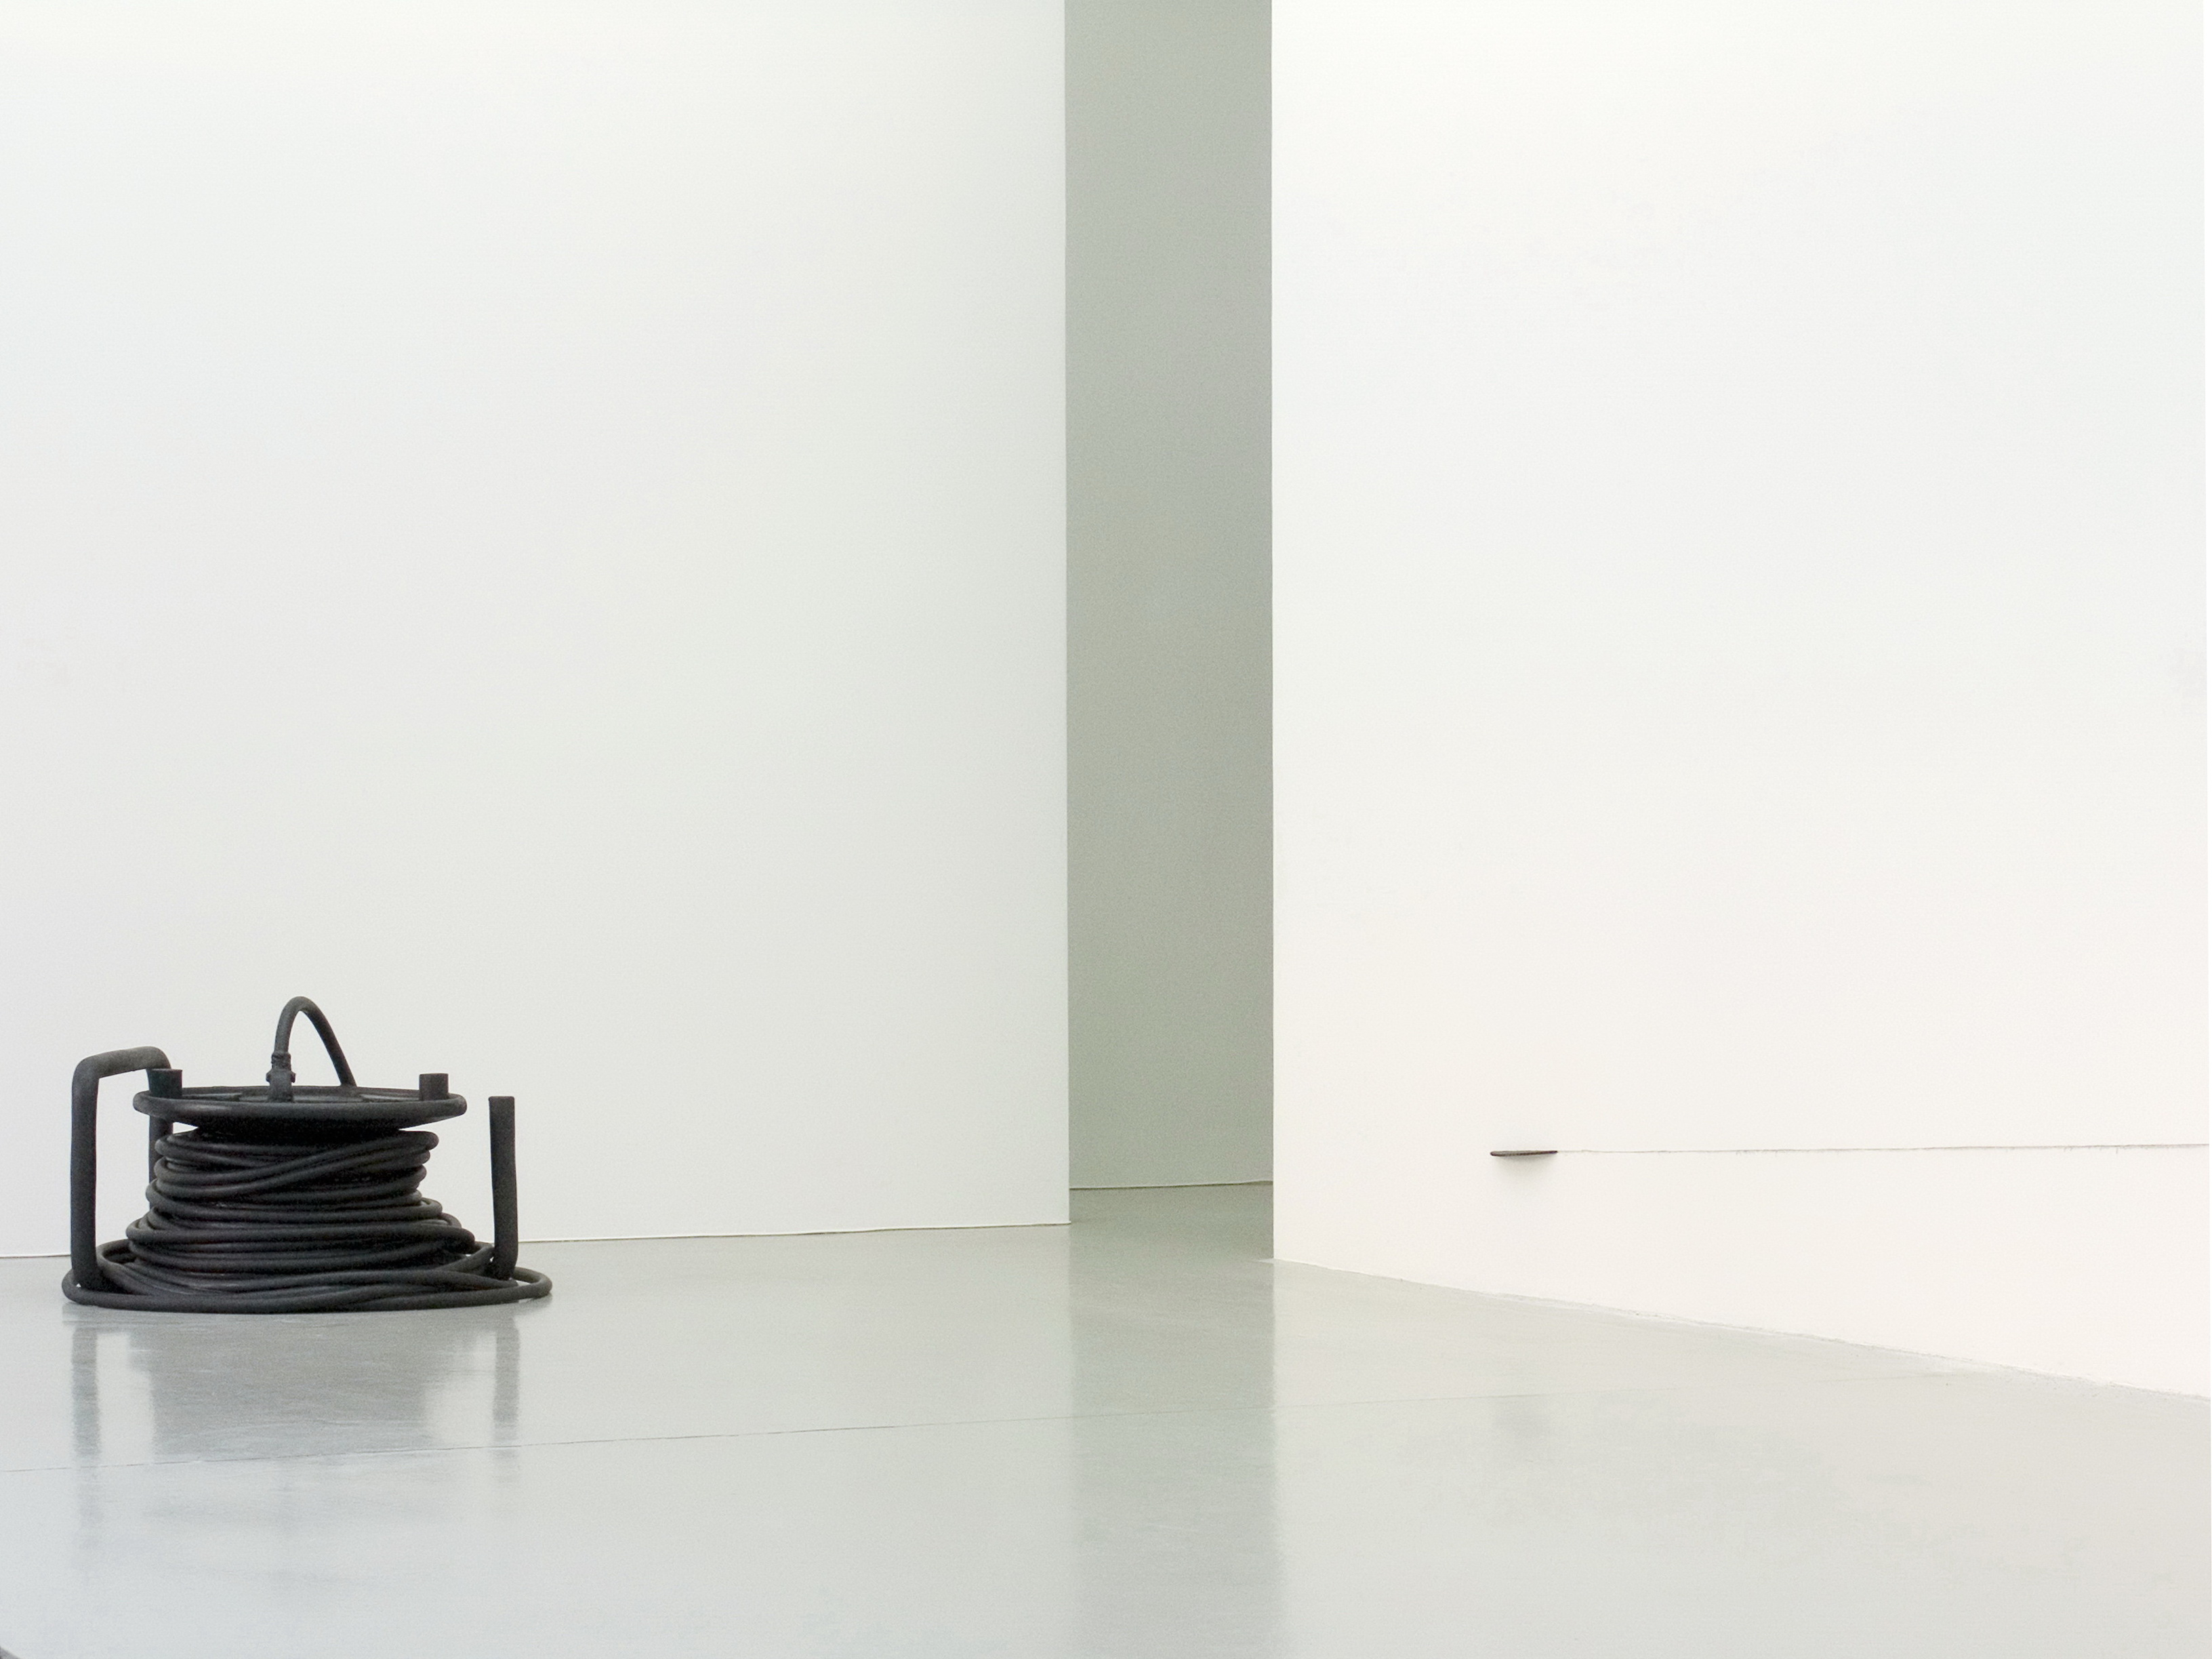 Kabeltrommel, a black oversized cabledrum sculpture made of epoxy resin by sculptor Erik Andersen. The artwork is placed on the floor of Charim Ungar Contemporary Gallery in Berlin, back in 2010